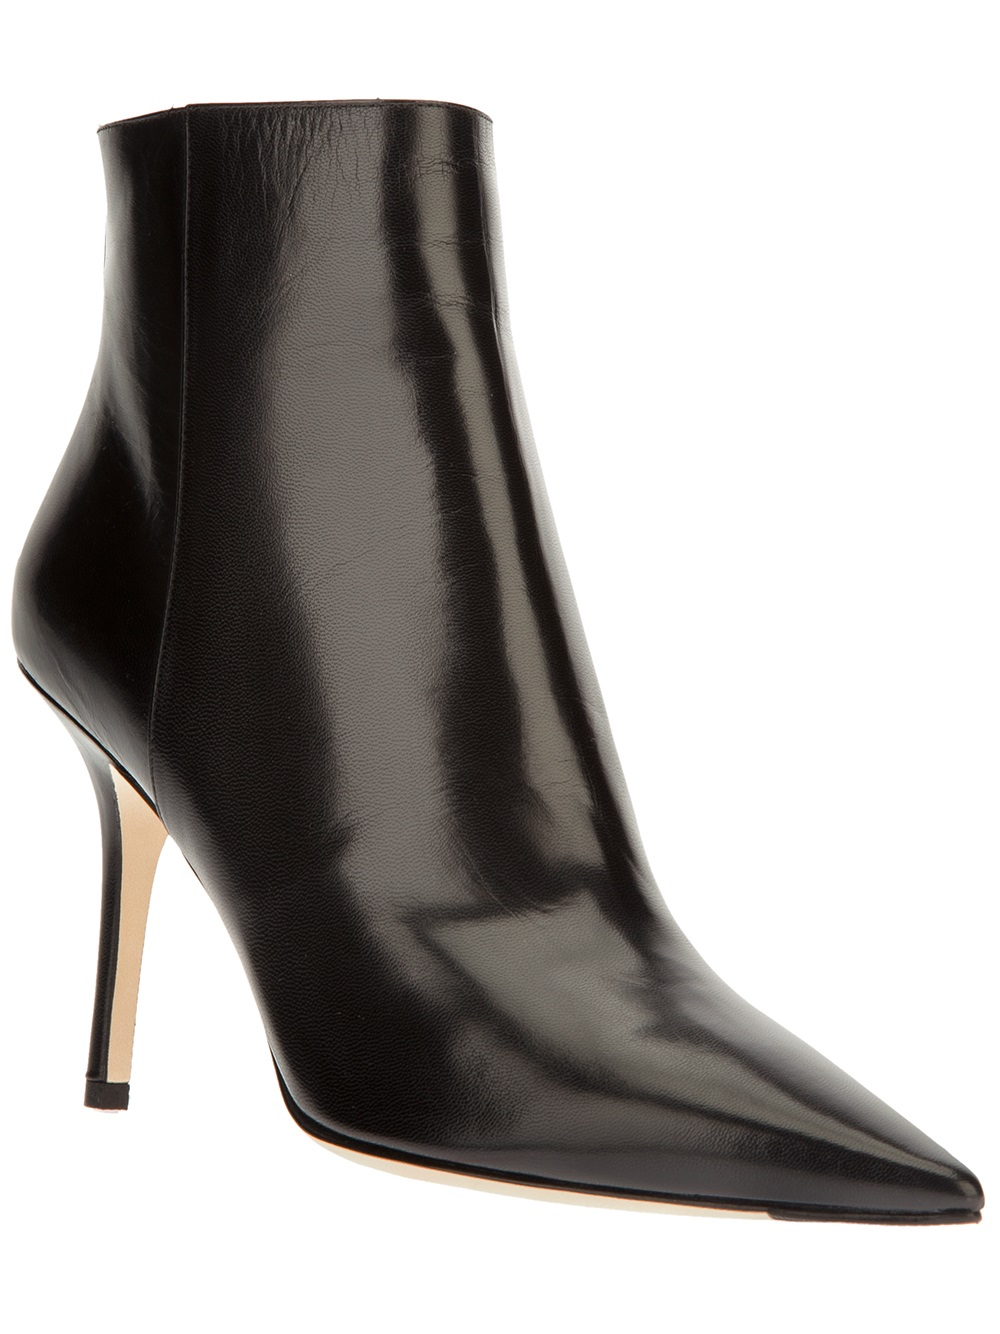 Jimmy Choo 'Amore' Boots in Black | Lyst